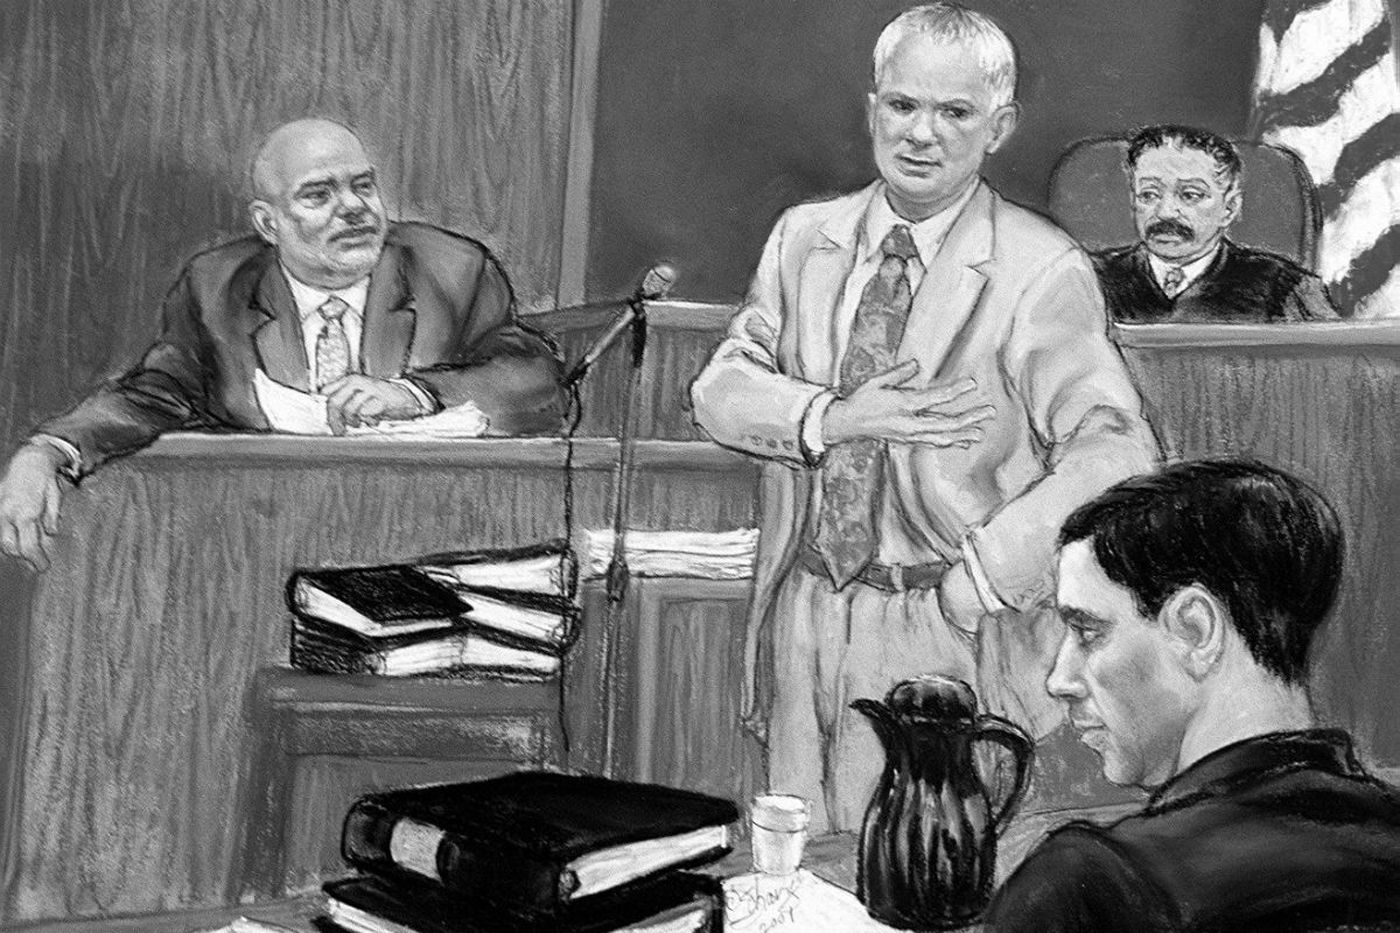 From the archives: Key witness? Wiseguy Ron Previte